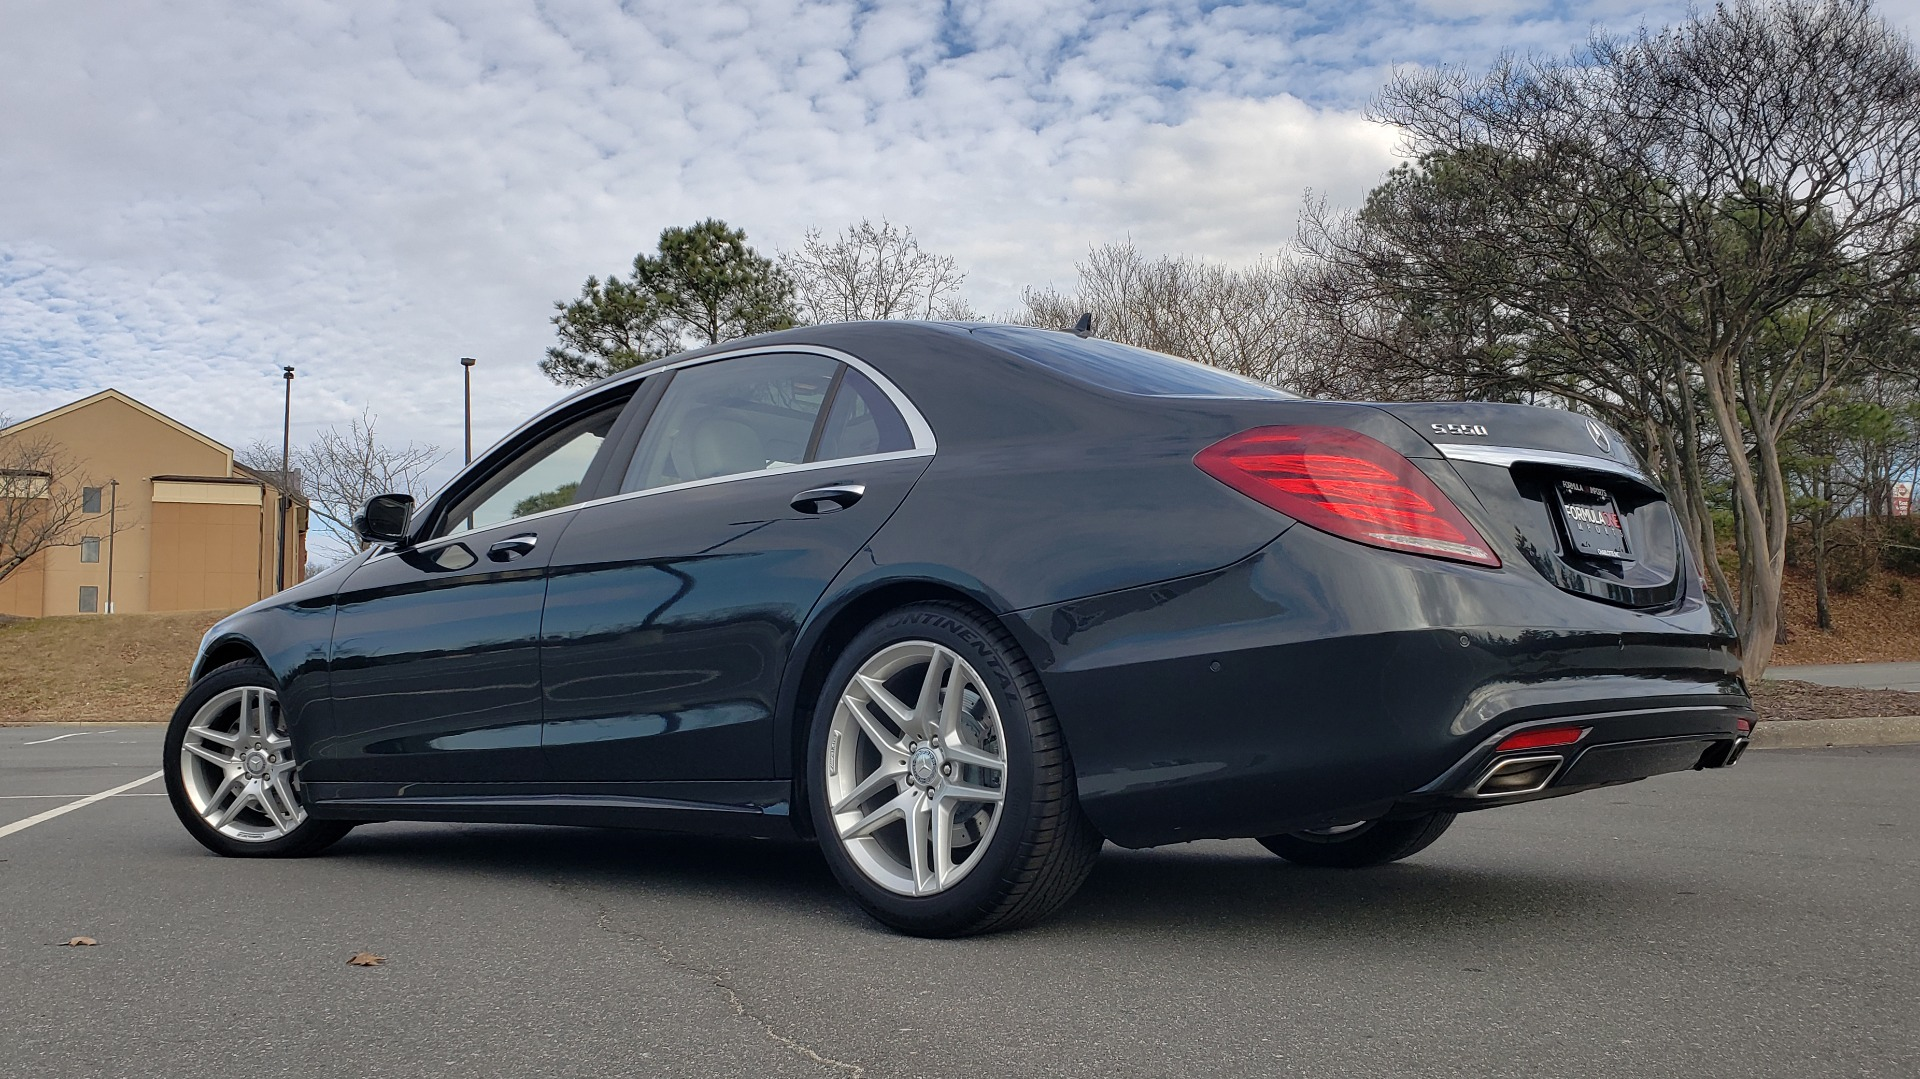 Used 2015 Mercedes-Benz S-CLASS S 550 PREMIUM / SPORT / WARMTH&COMFORT / DRVR ASST / SRND VIEW for sale Sold at Formula Imports in Charlotte NC 28227 9